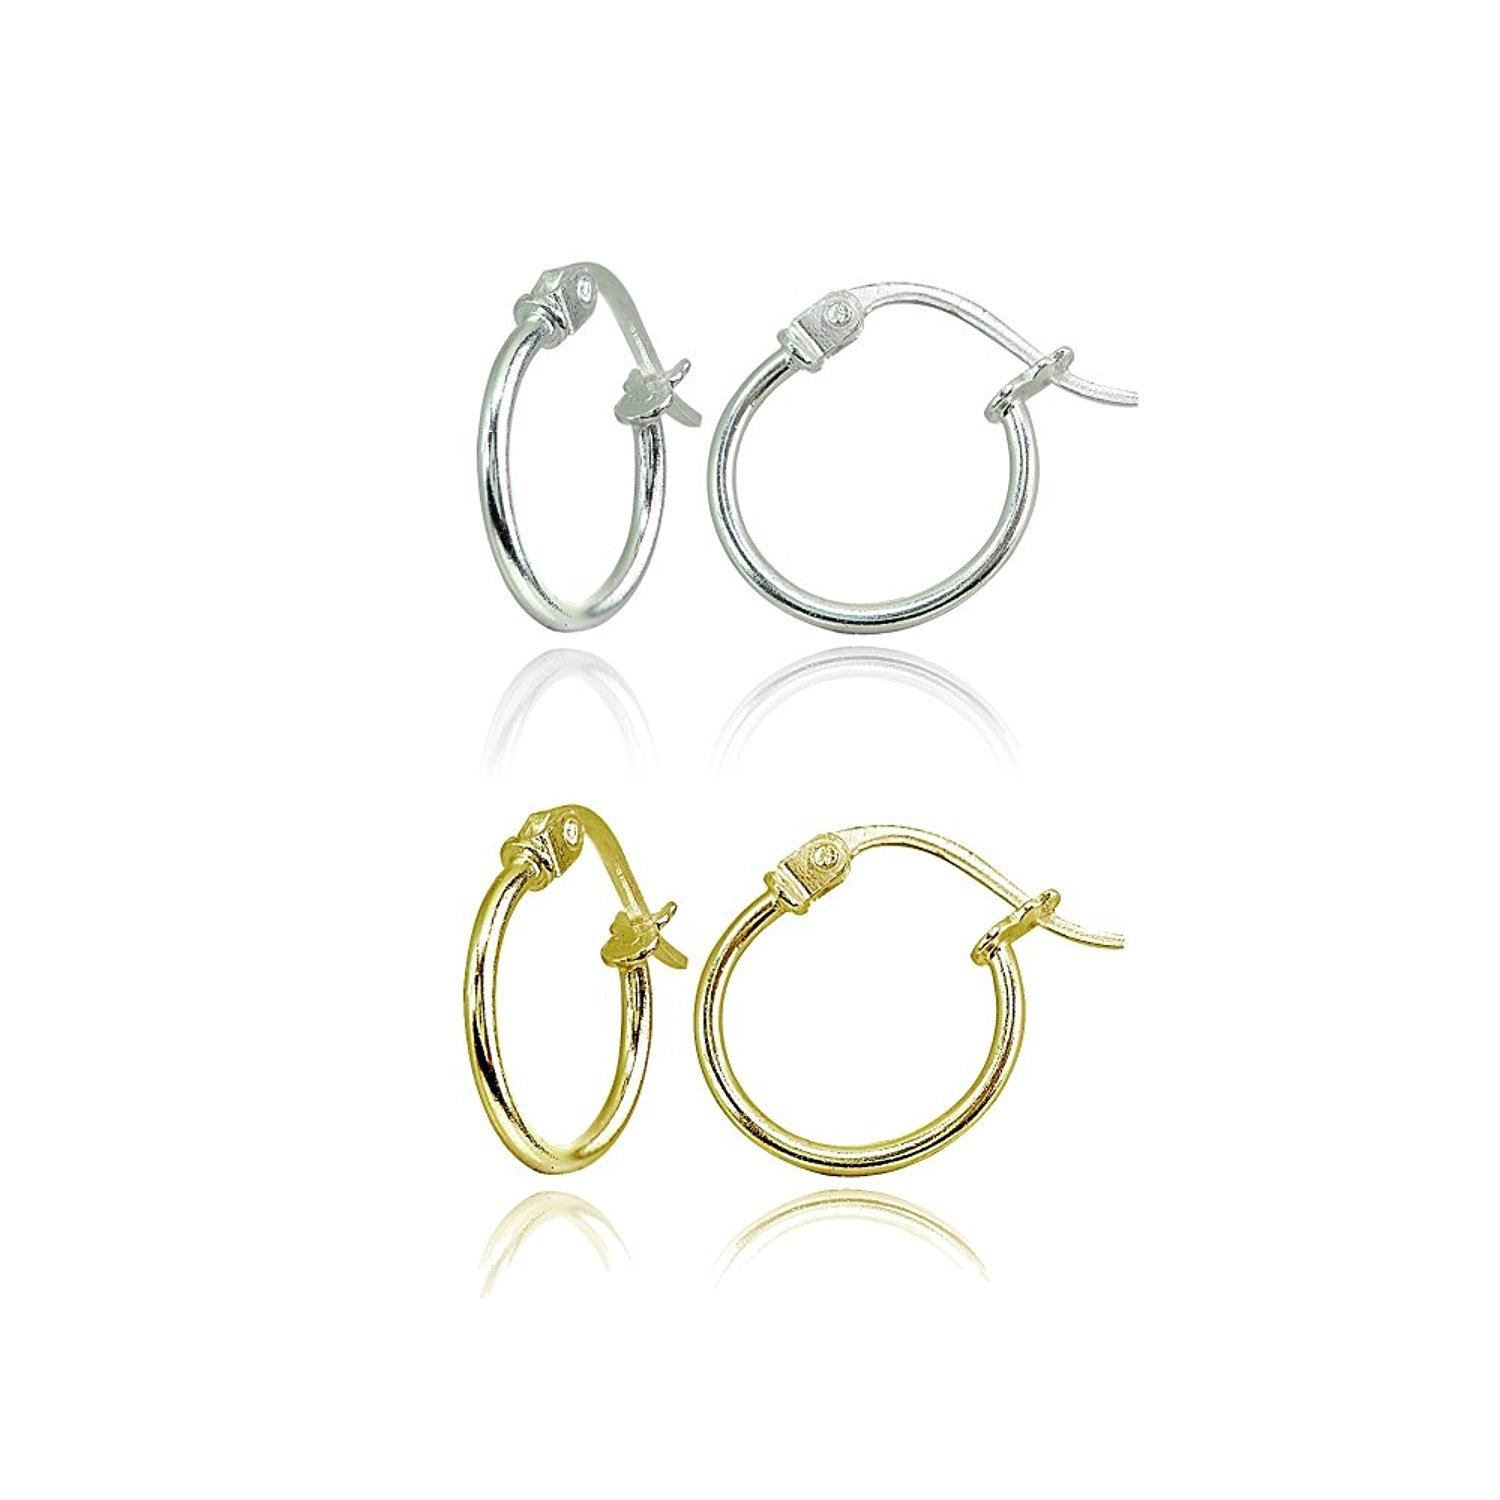 Rose Gold Flashed Sterling Silver Tiny or Small High Polished Round Thin Lightweight Unisex Click-Top Hoop Earrings Choose a Size